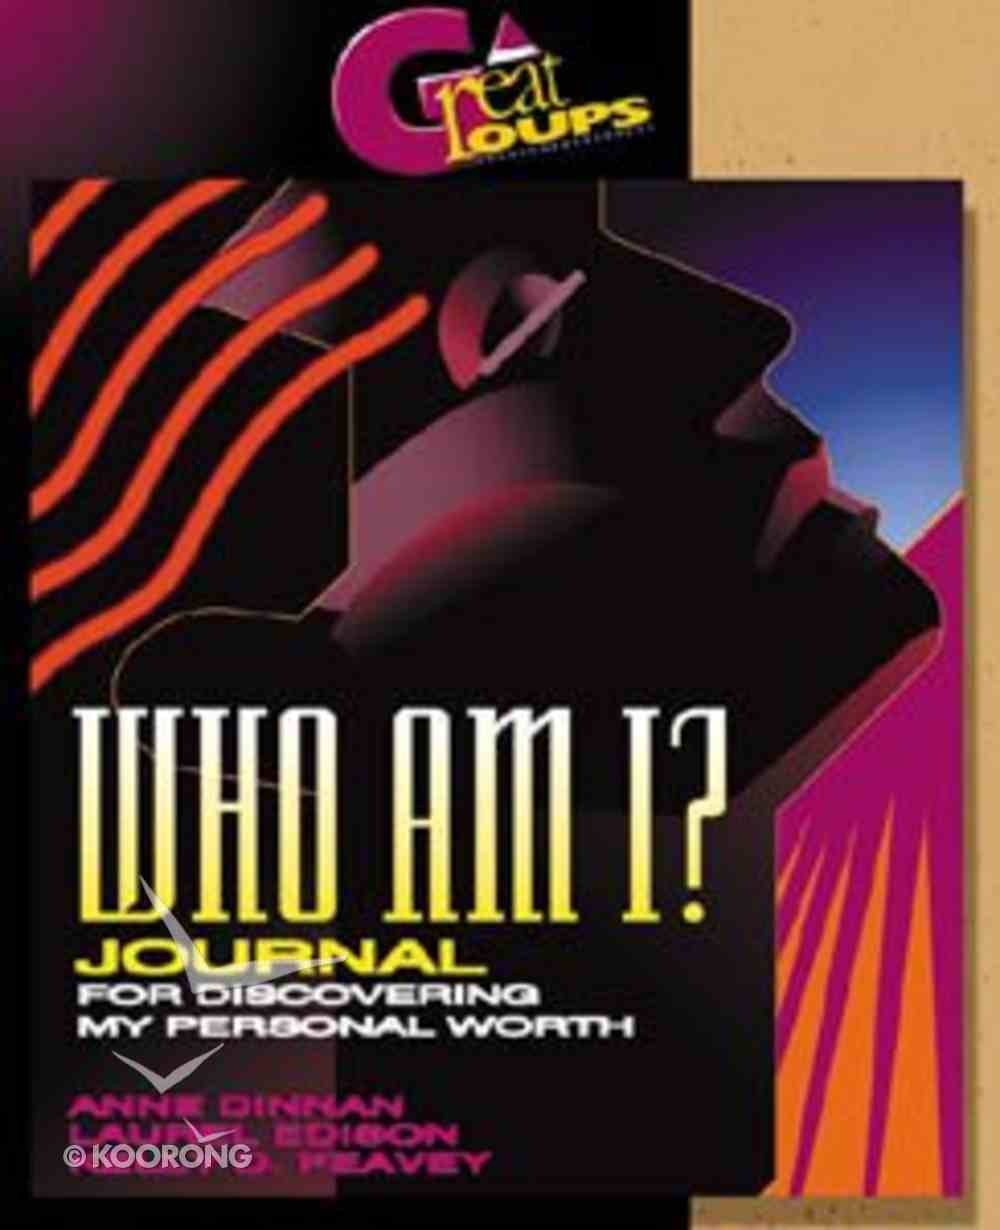 Great Groups: Who Am I? Journal Paperback